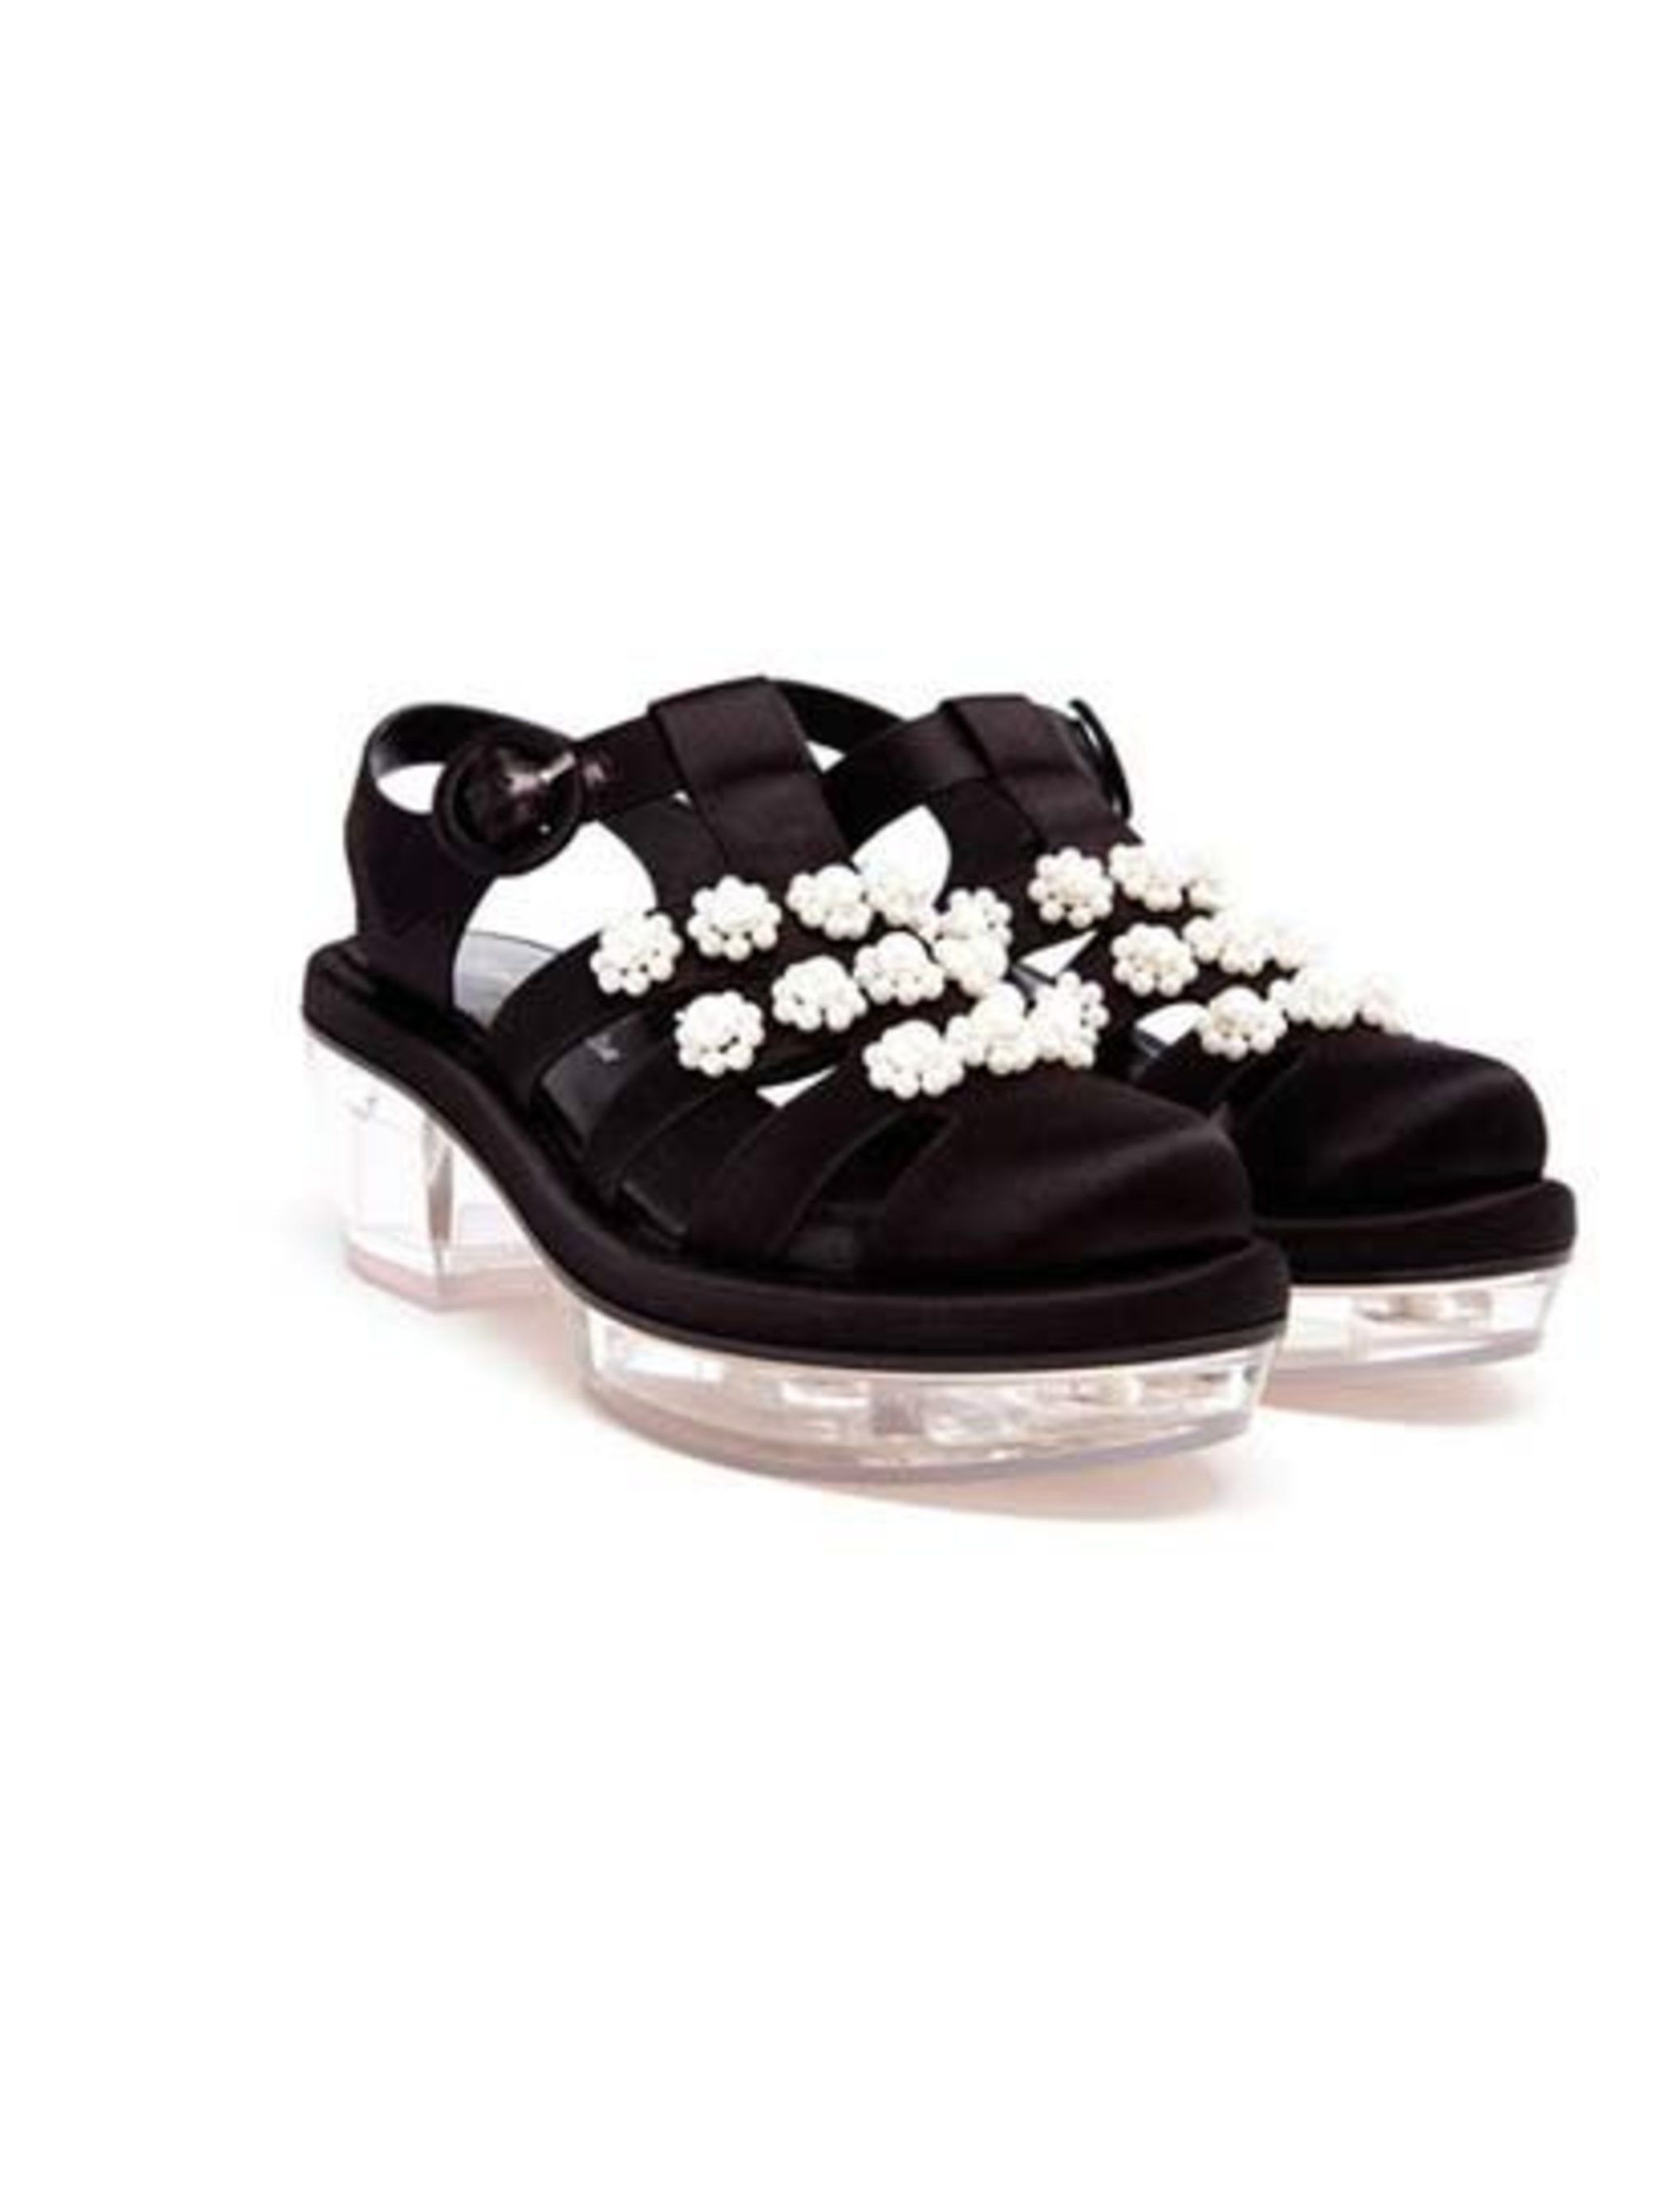 "<p>Perspex and satin sandals with Simone's floral pearl embellishment, are £915 at <a href=""http://www.brownsfashion.com/product/038S52740003/027/pearl-embellished-satin-sandals"">Browns</a>.</p>"